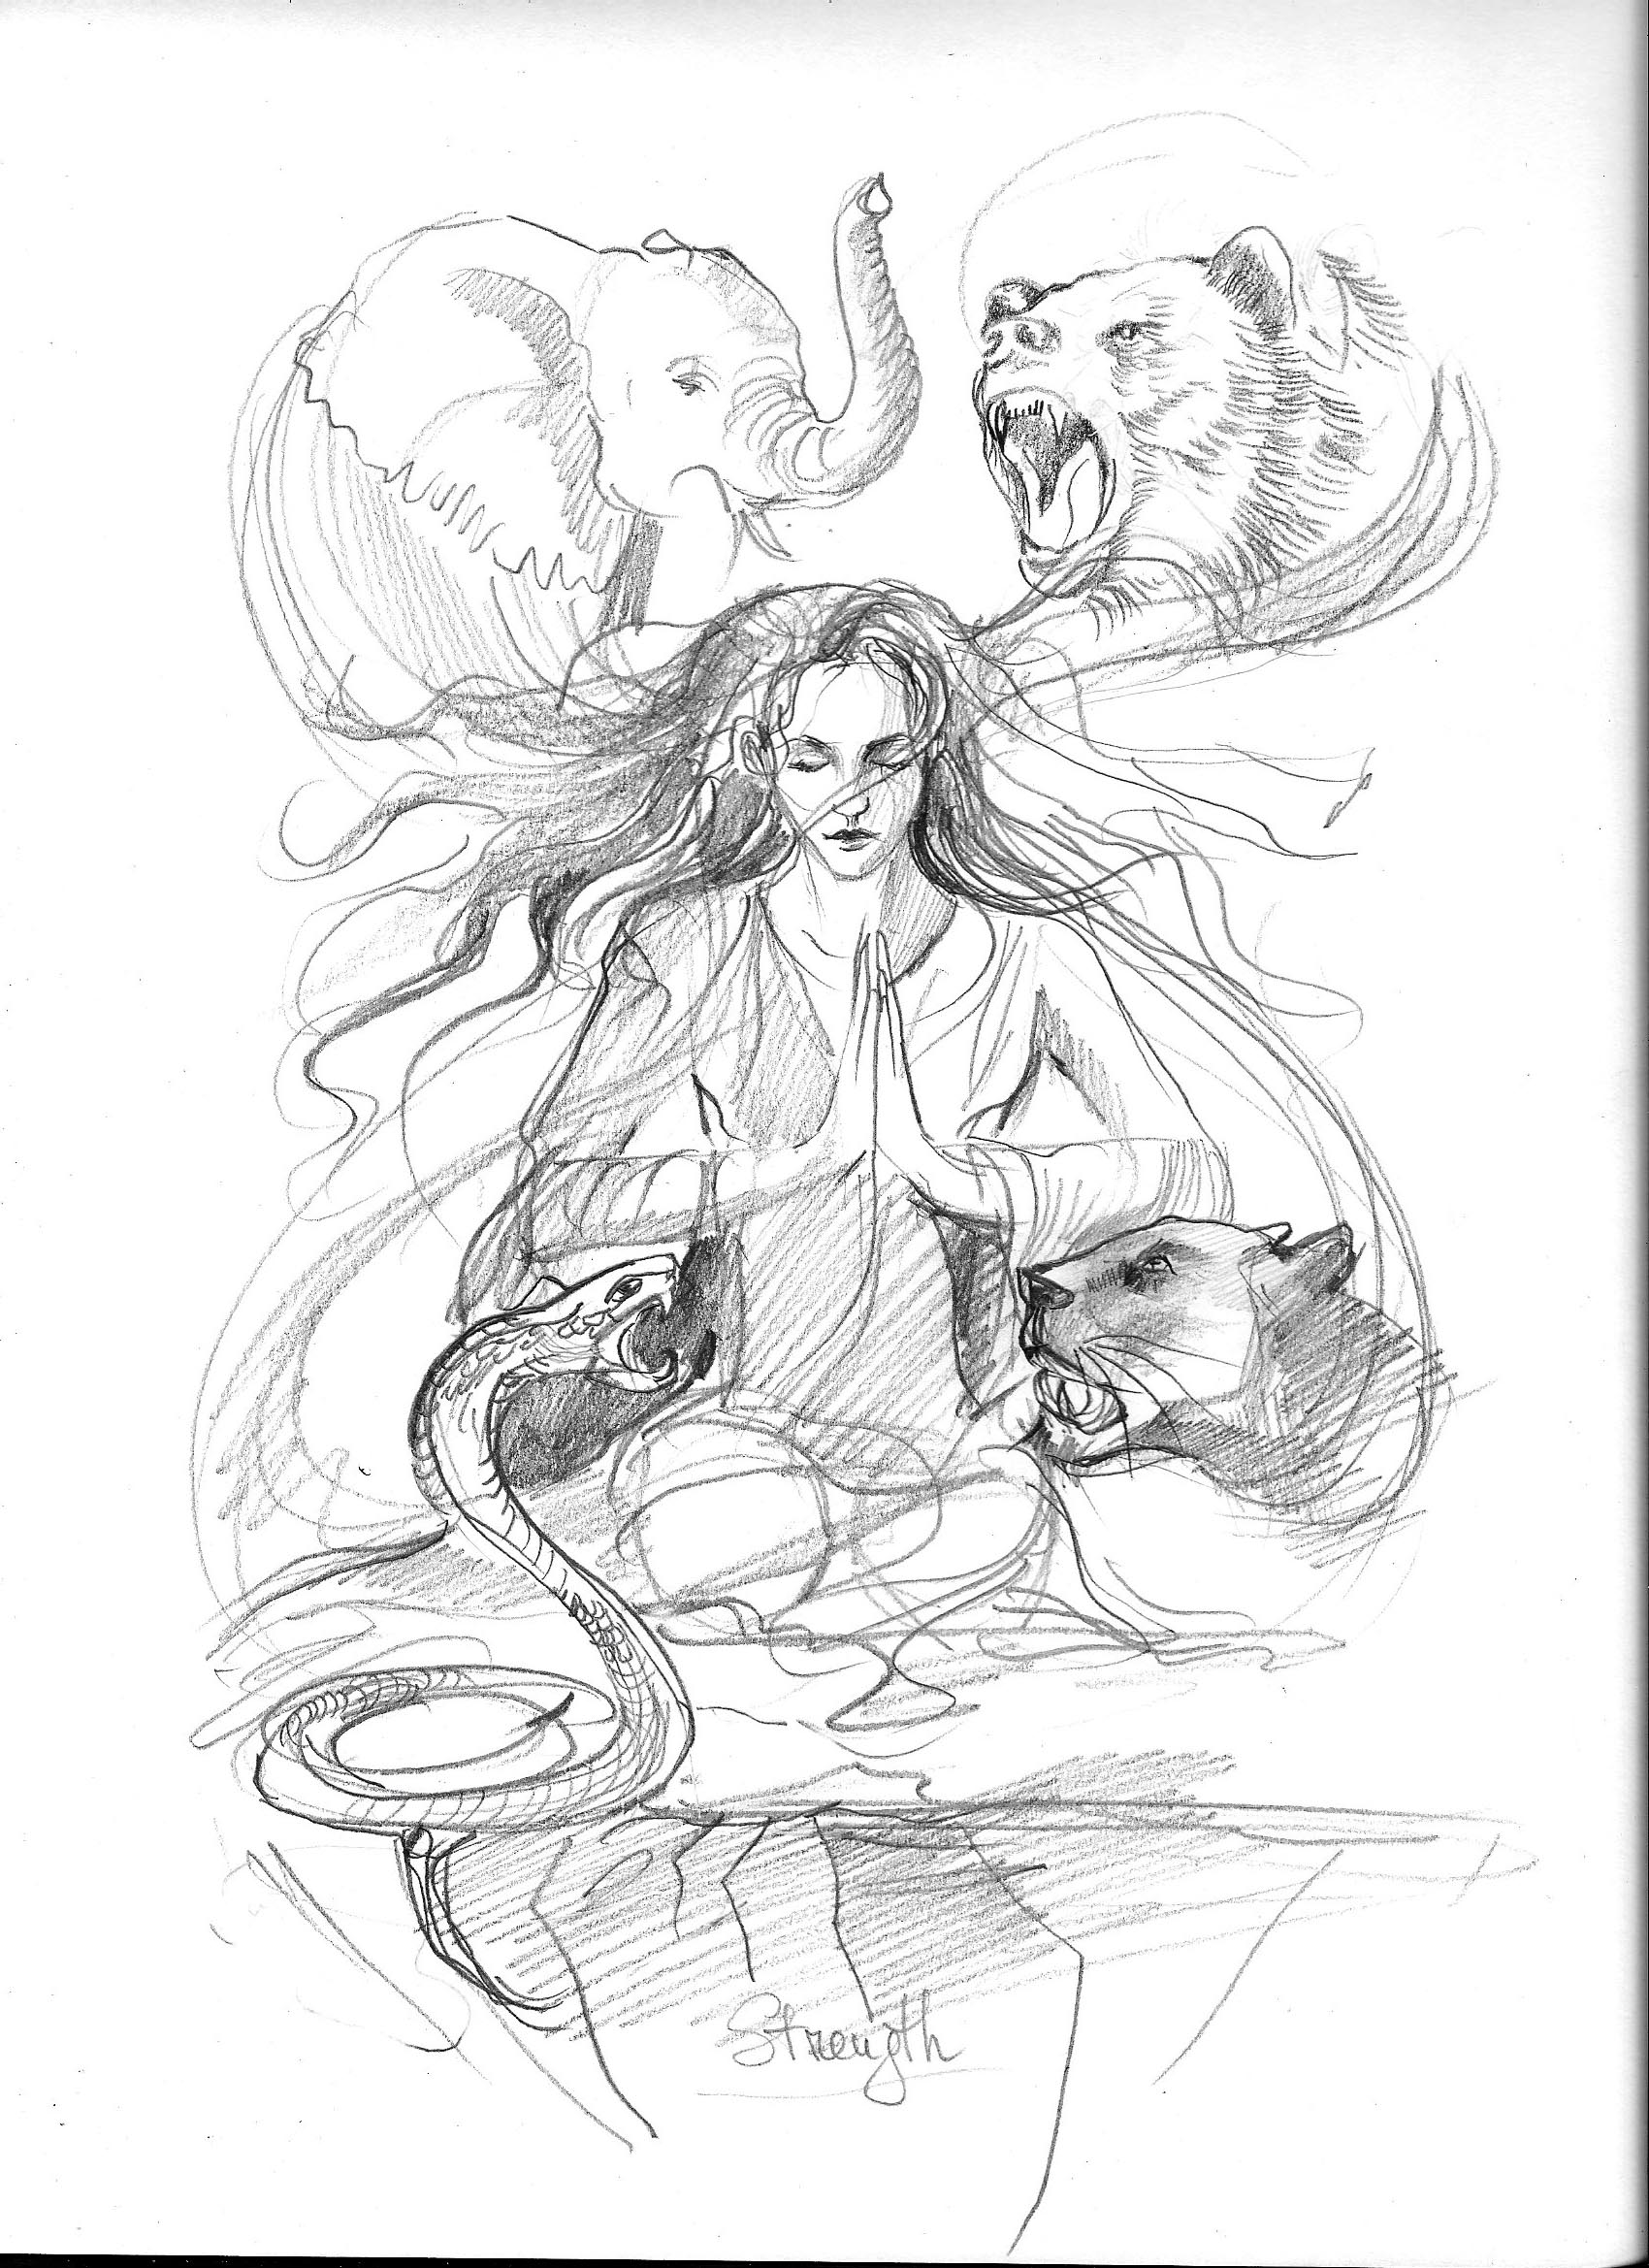 Pencil sketch of the strength card